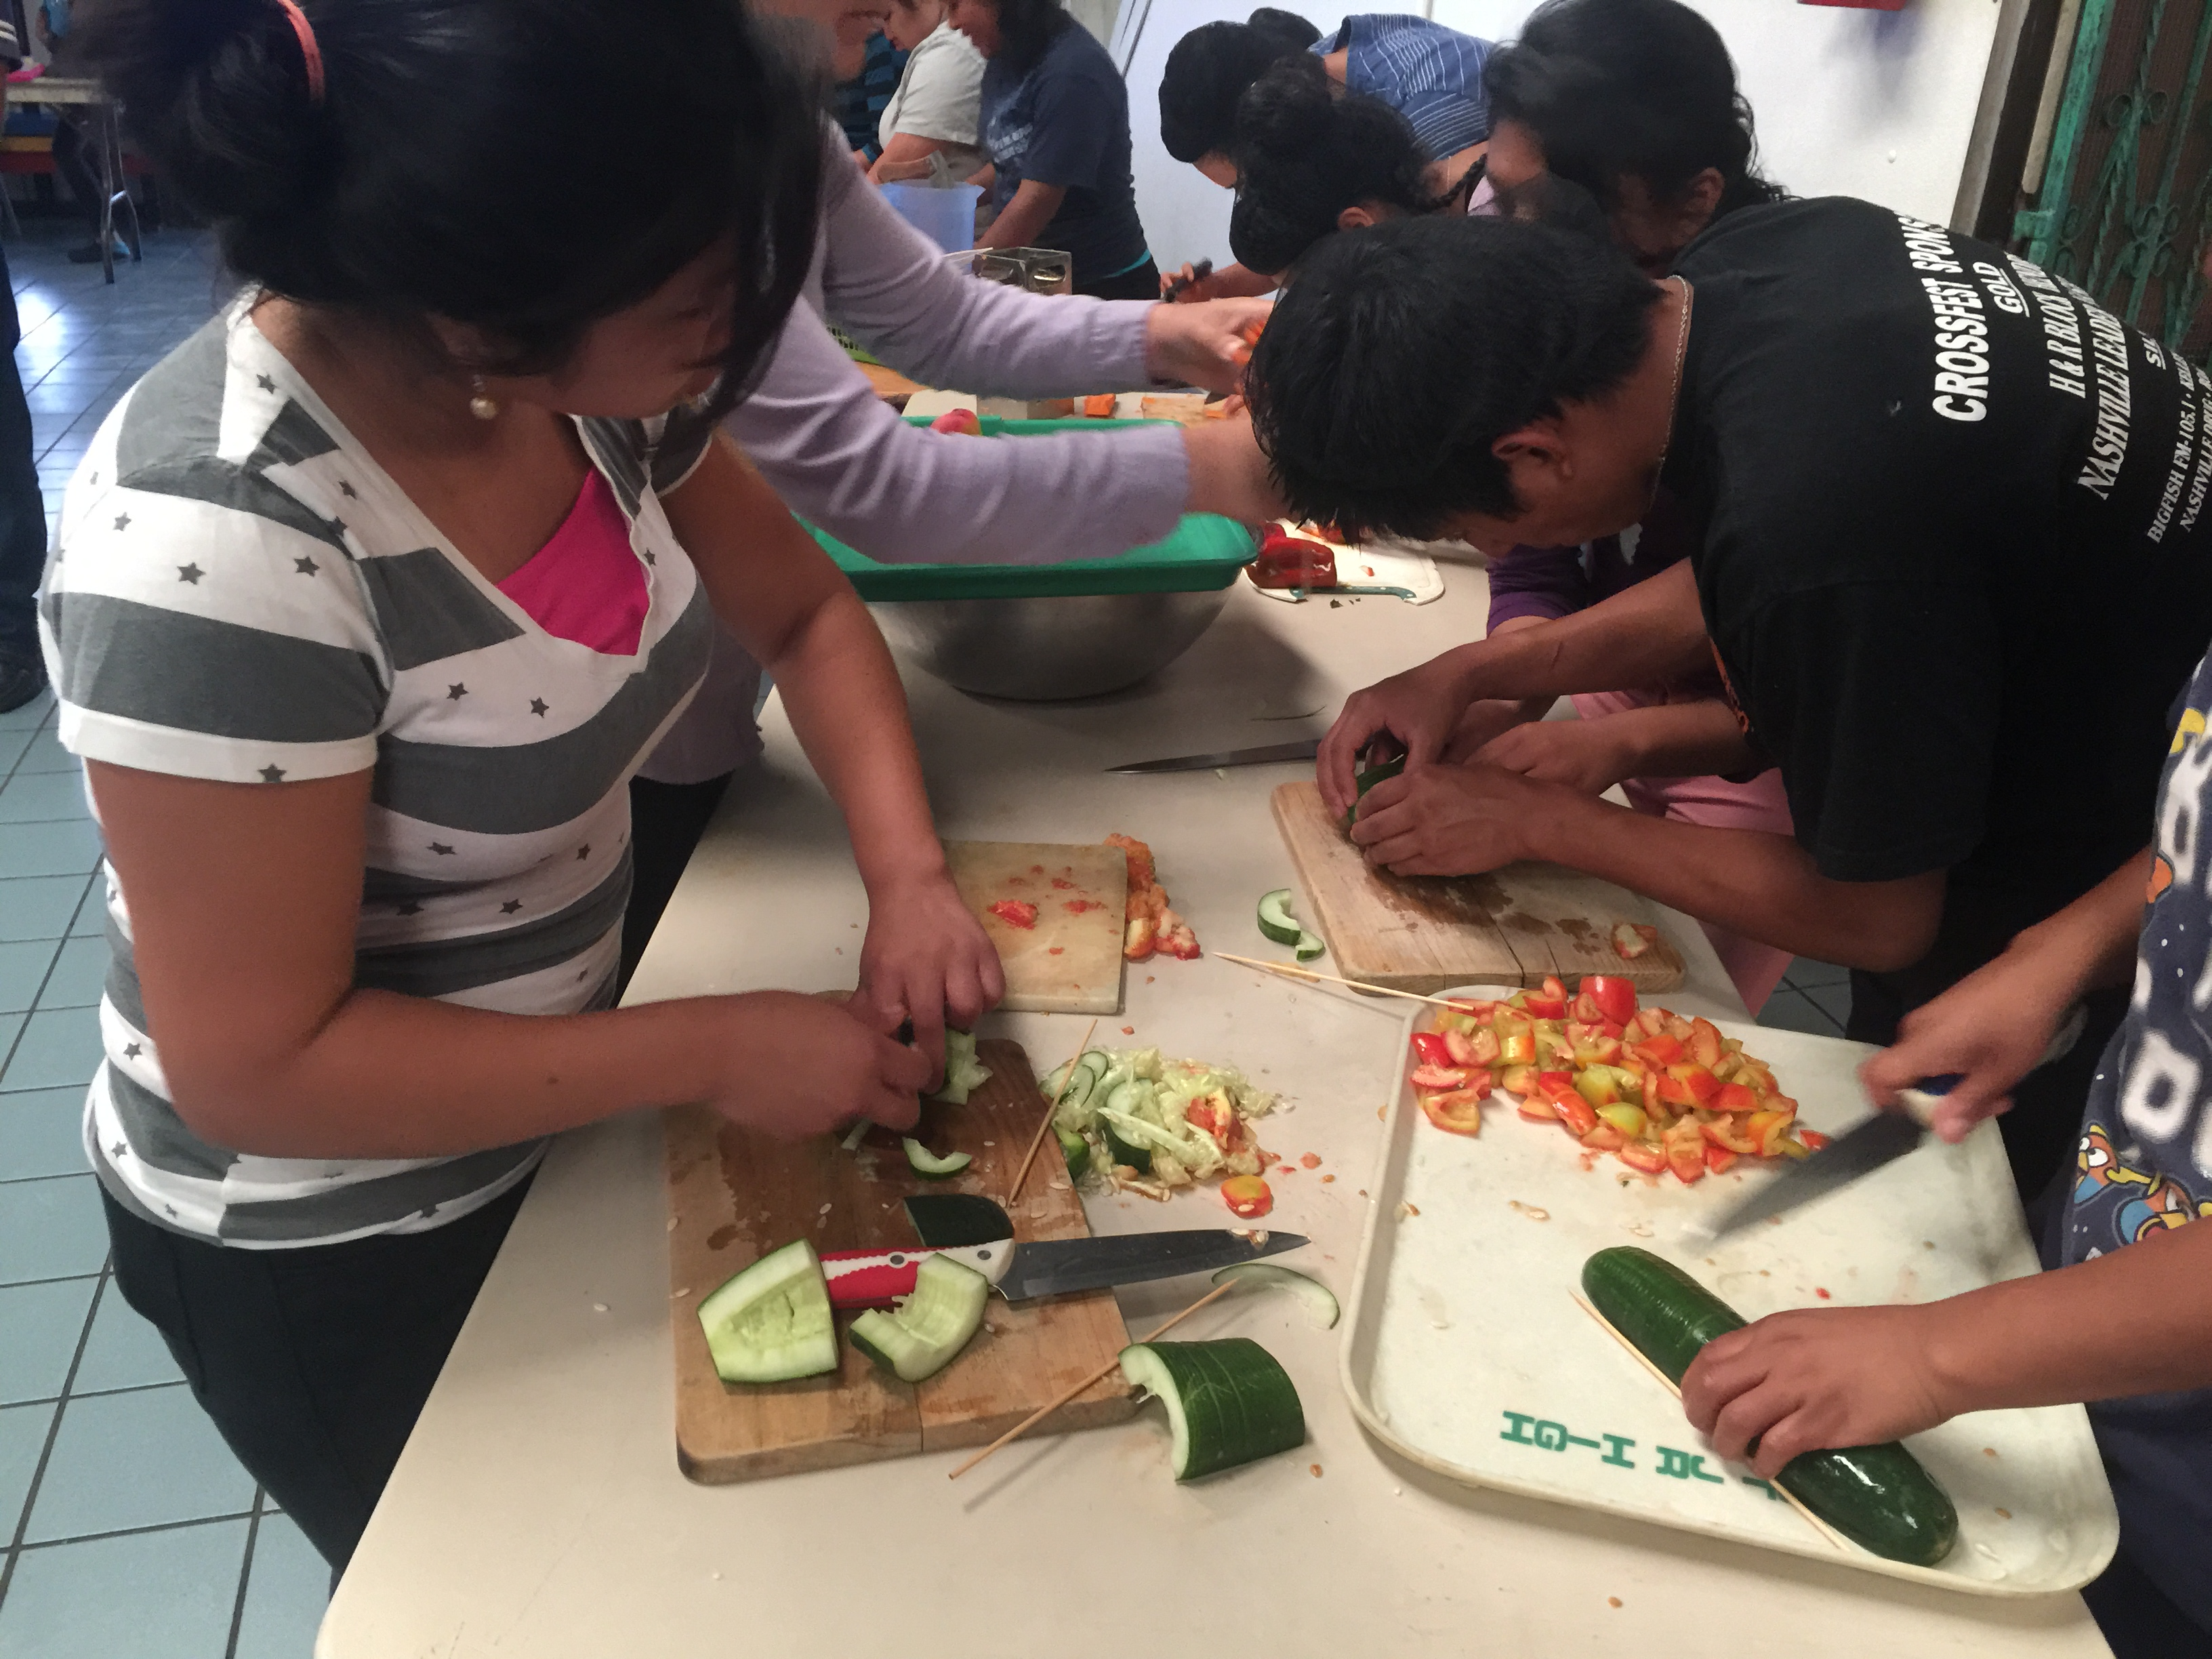 Demonstration in the cooking class